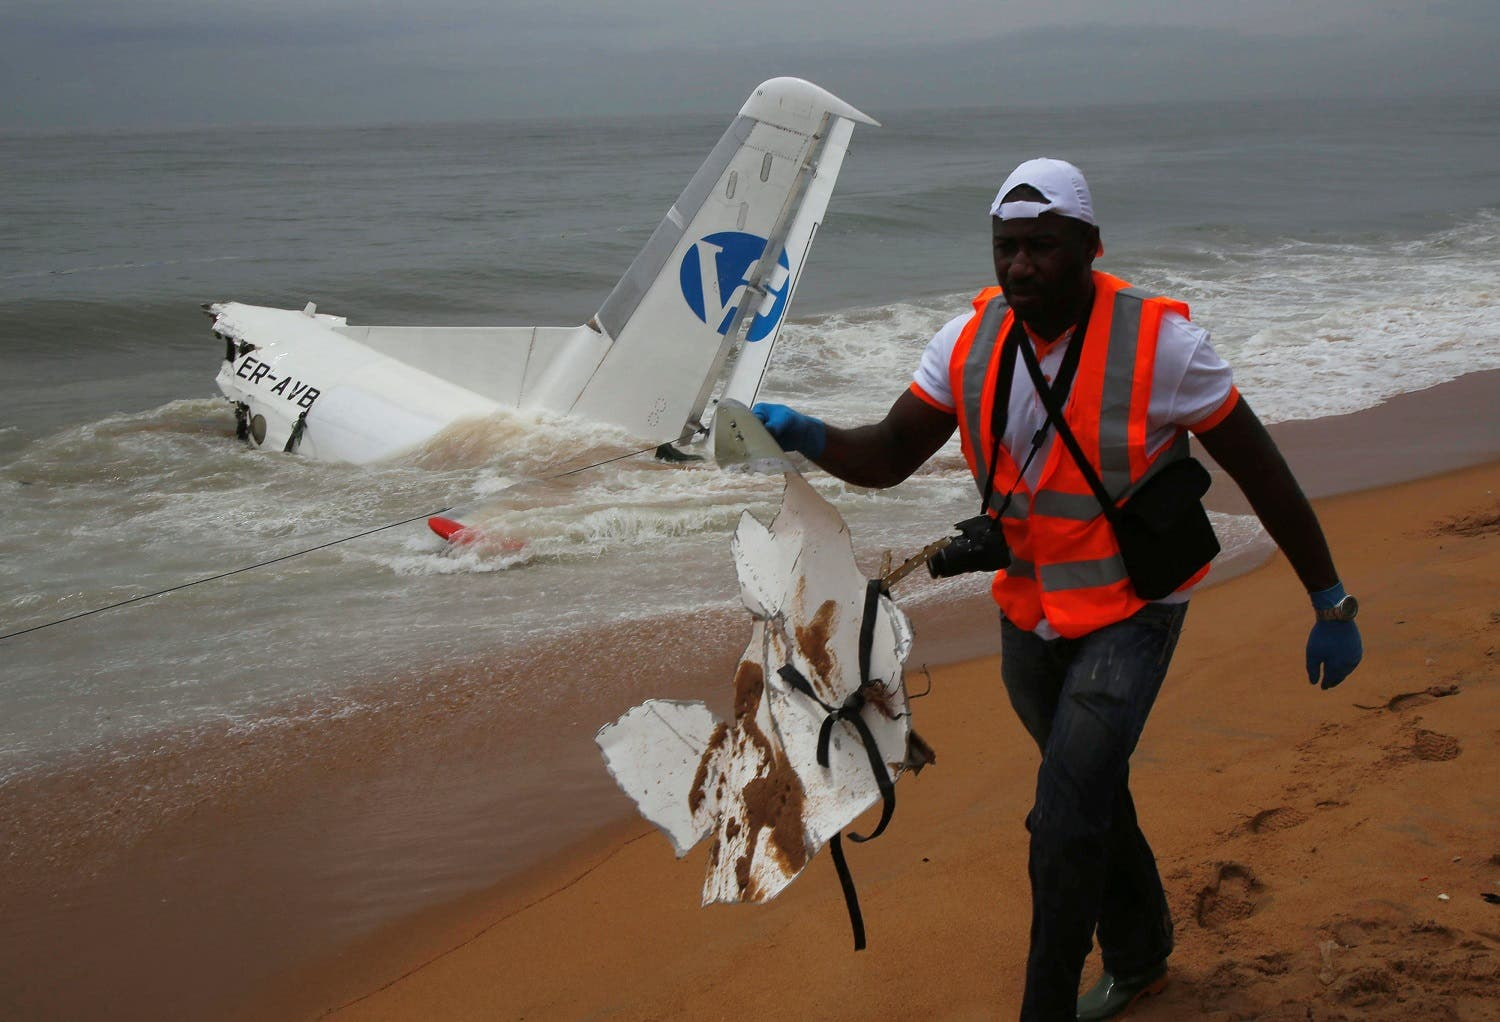 A rescuer carries a piece of a cargo plane after it crashed in the sea near the international airport in Ivory Coast's main city, Abidjan. (Reuters)